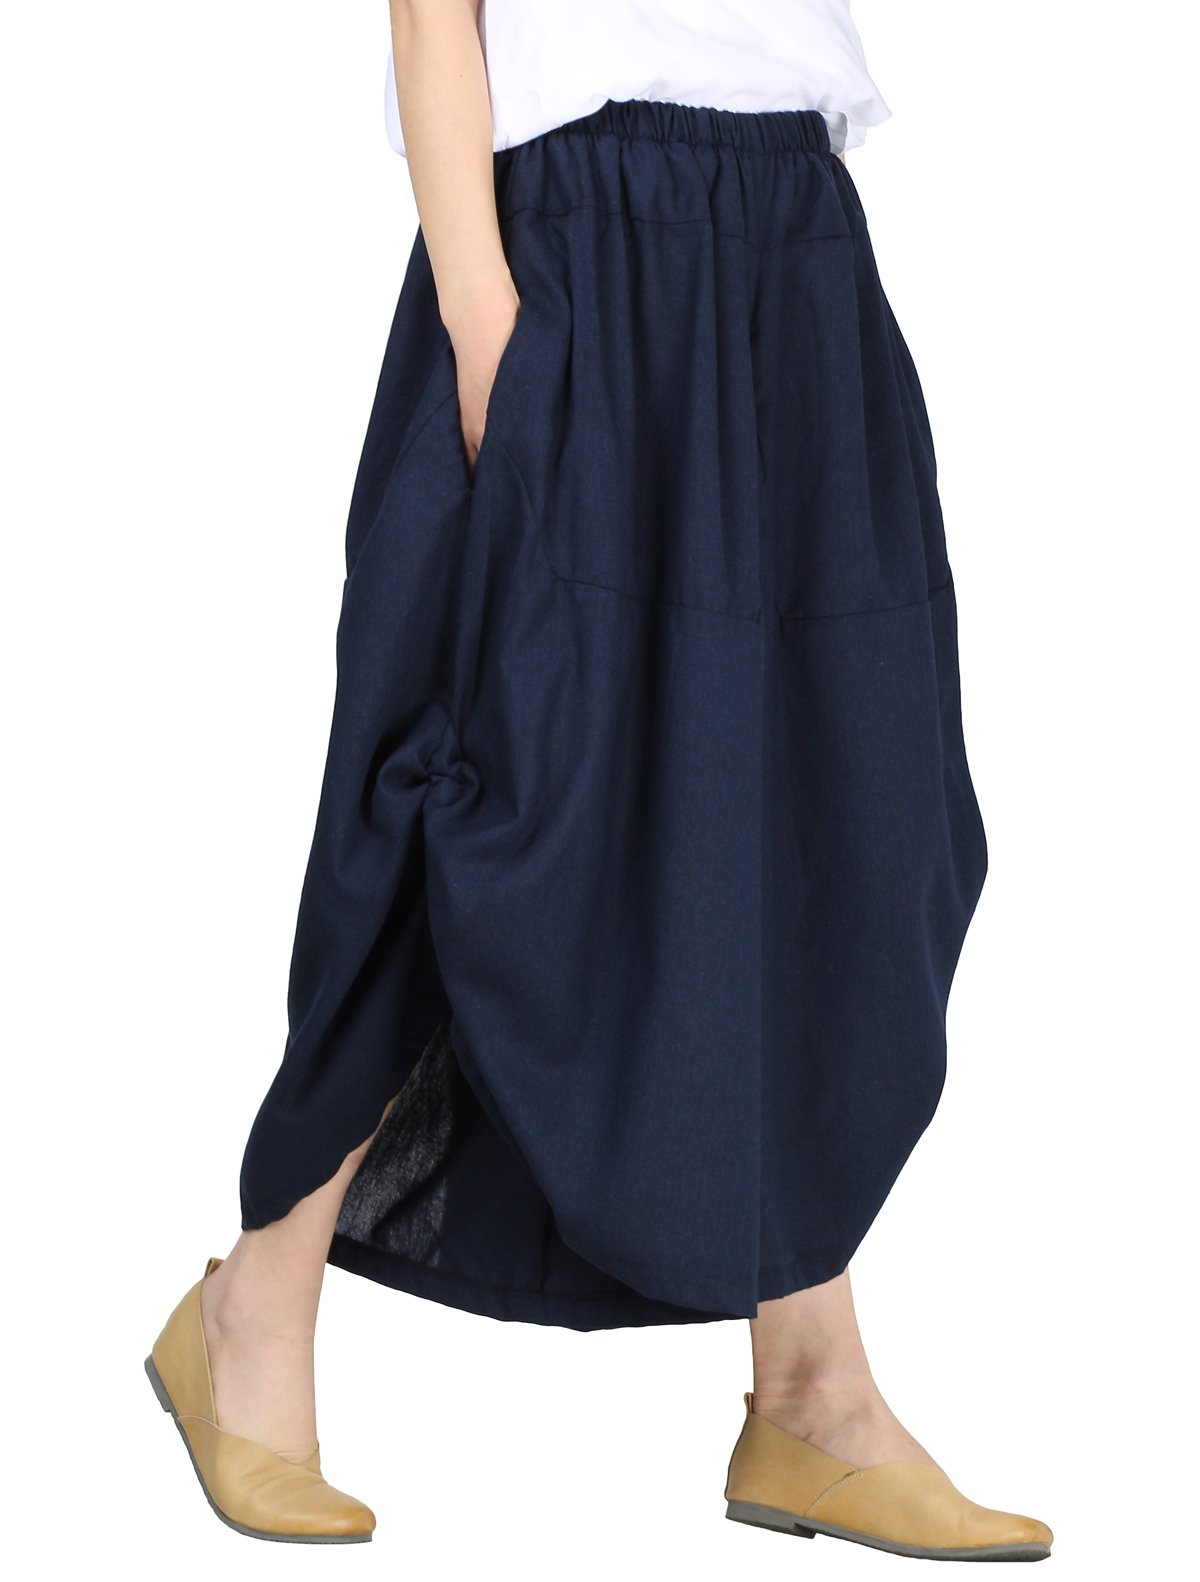 Mordenmiss Women's New Elastic Waist Wide Leg Pants with Pockets (L, Style 1-Dark Blue)